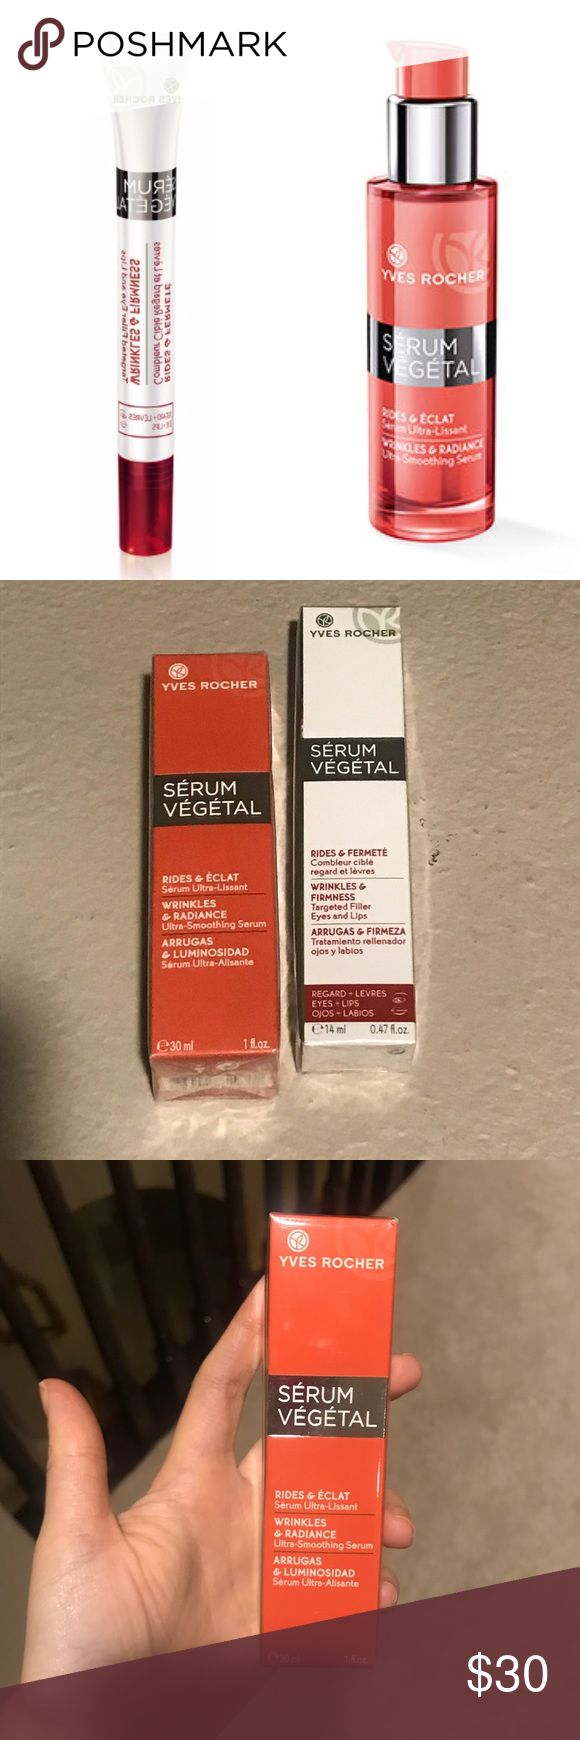 Yves Rocher Serum Vegetal Wrinkle Skincare Purchased online from Yves Rocher less than a year ago. NEVER USED!! Both products are sealed.   Price listed is for BOTH ITEMS!!   Products include:  - Serum Vegetal Wrinkles & Firmness Targeted Fuller for Eyes & Lips (0.47 fl. oz.)  - Serum Vegetal Wrinkles & Radiance Ultra Smoothing Serum (1 fl. oz.)   NO TRADES!! PRICE IS FAIR, FIRM & FINAL!! ALL OFFERS WILL BE DECLINED!! Yves Rocher Makeup